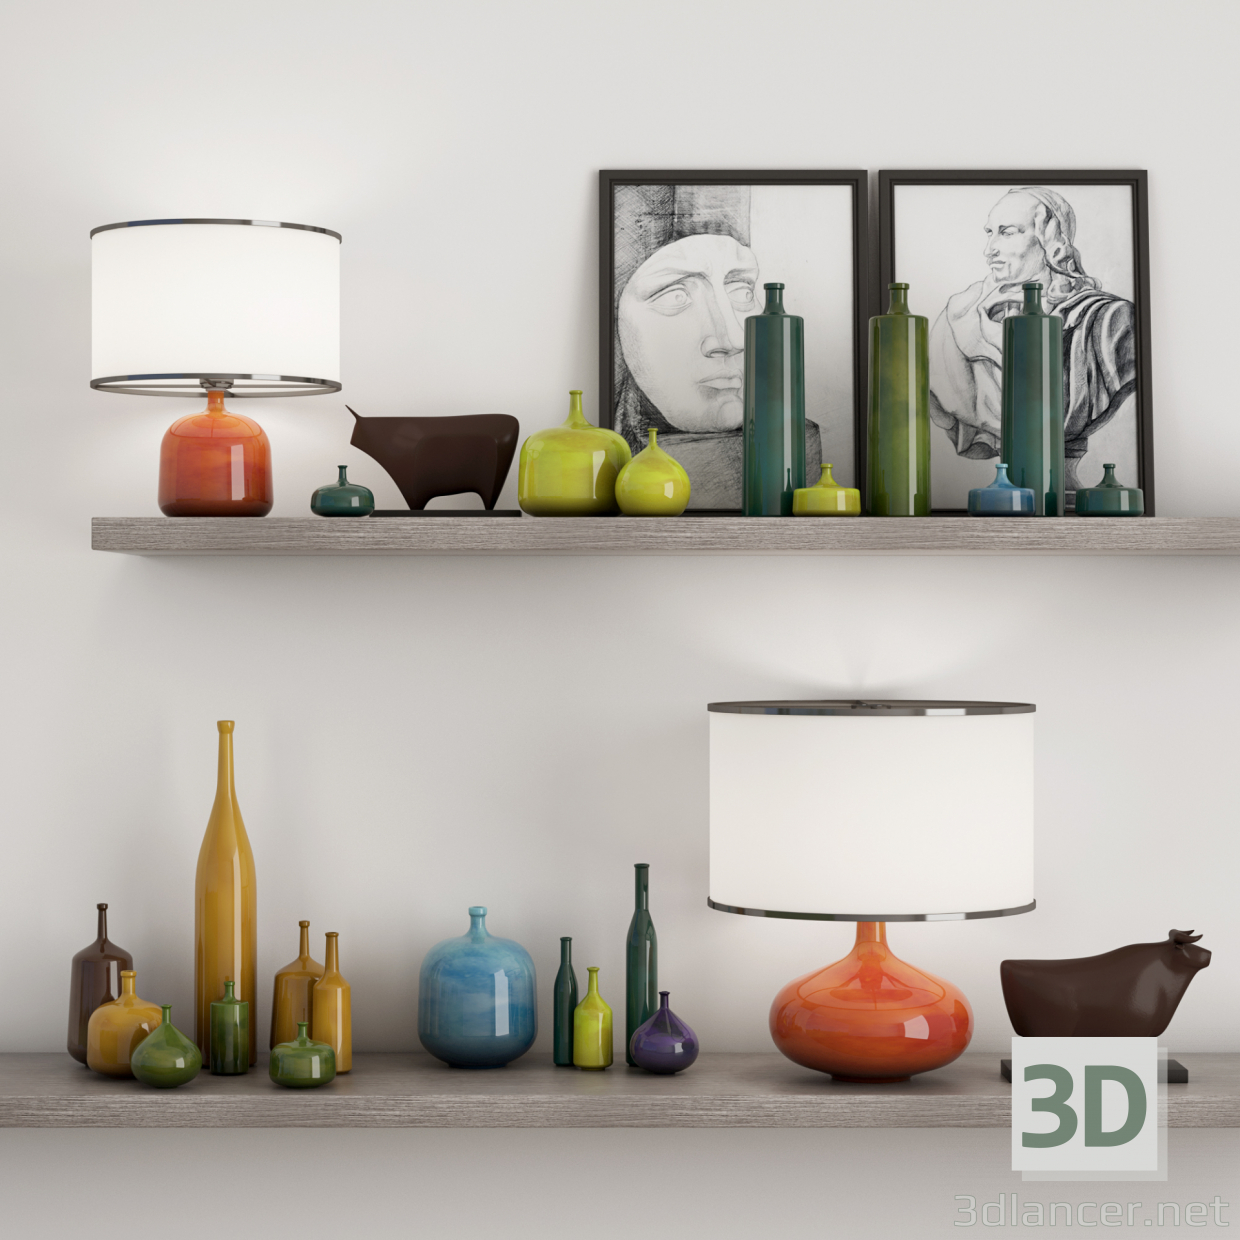 3d model Shelves, vases, paintings, figures - preview